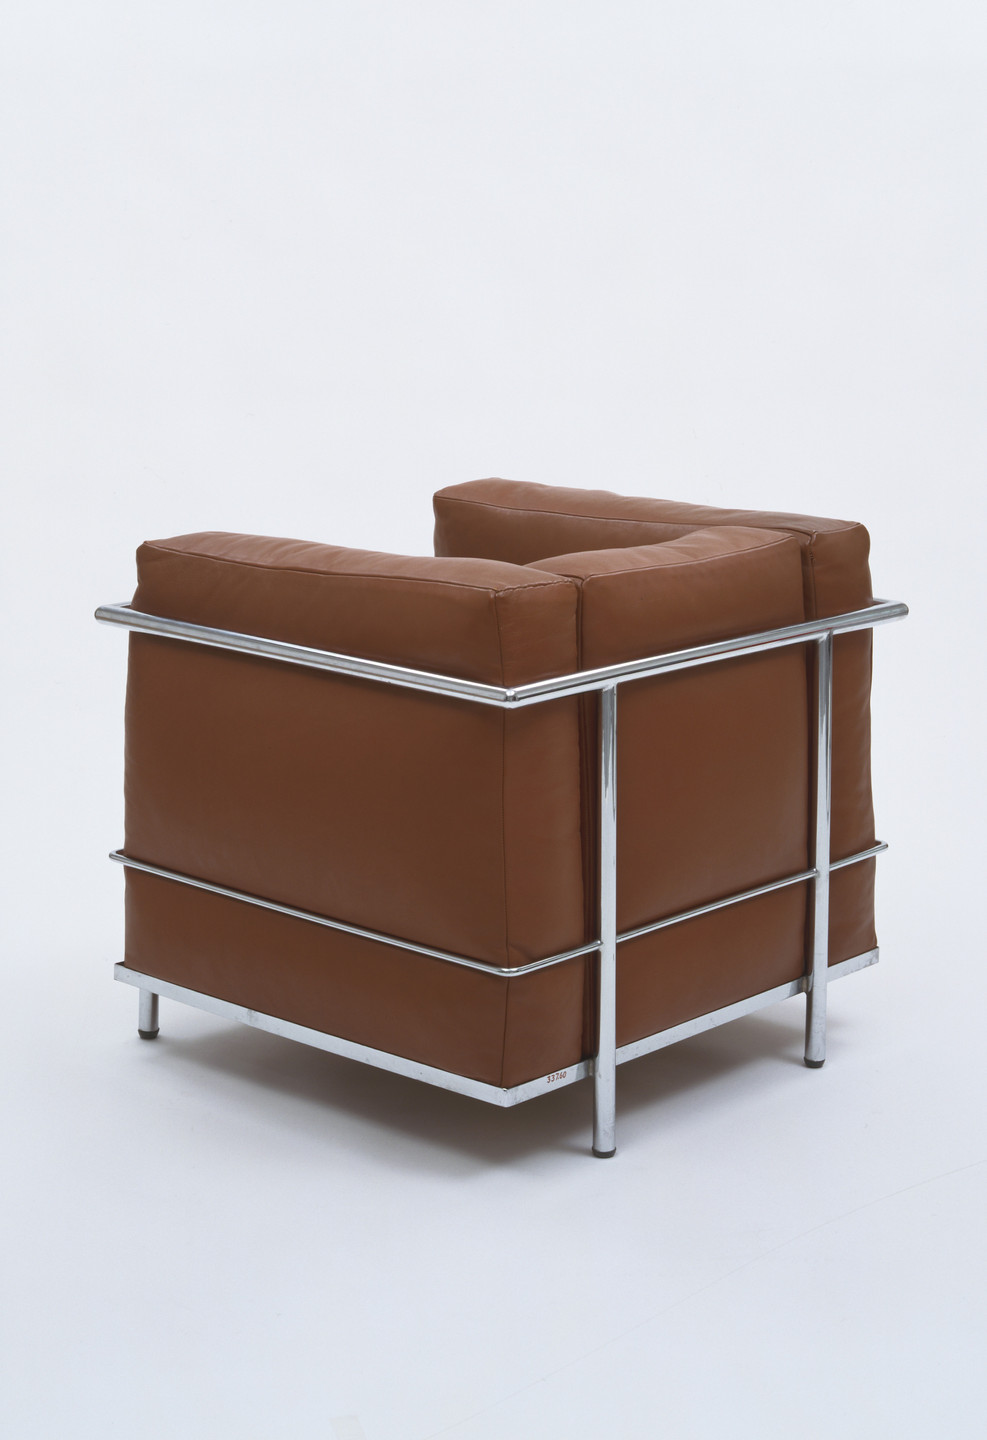 Le Corbusier (Charles-Édouard Jeanneret), Pierre Jeanneret, Charlotte Perriand. Easy Chair (Fauteuil Grand Confort). Designed 1928 (this example 1959)